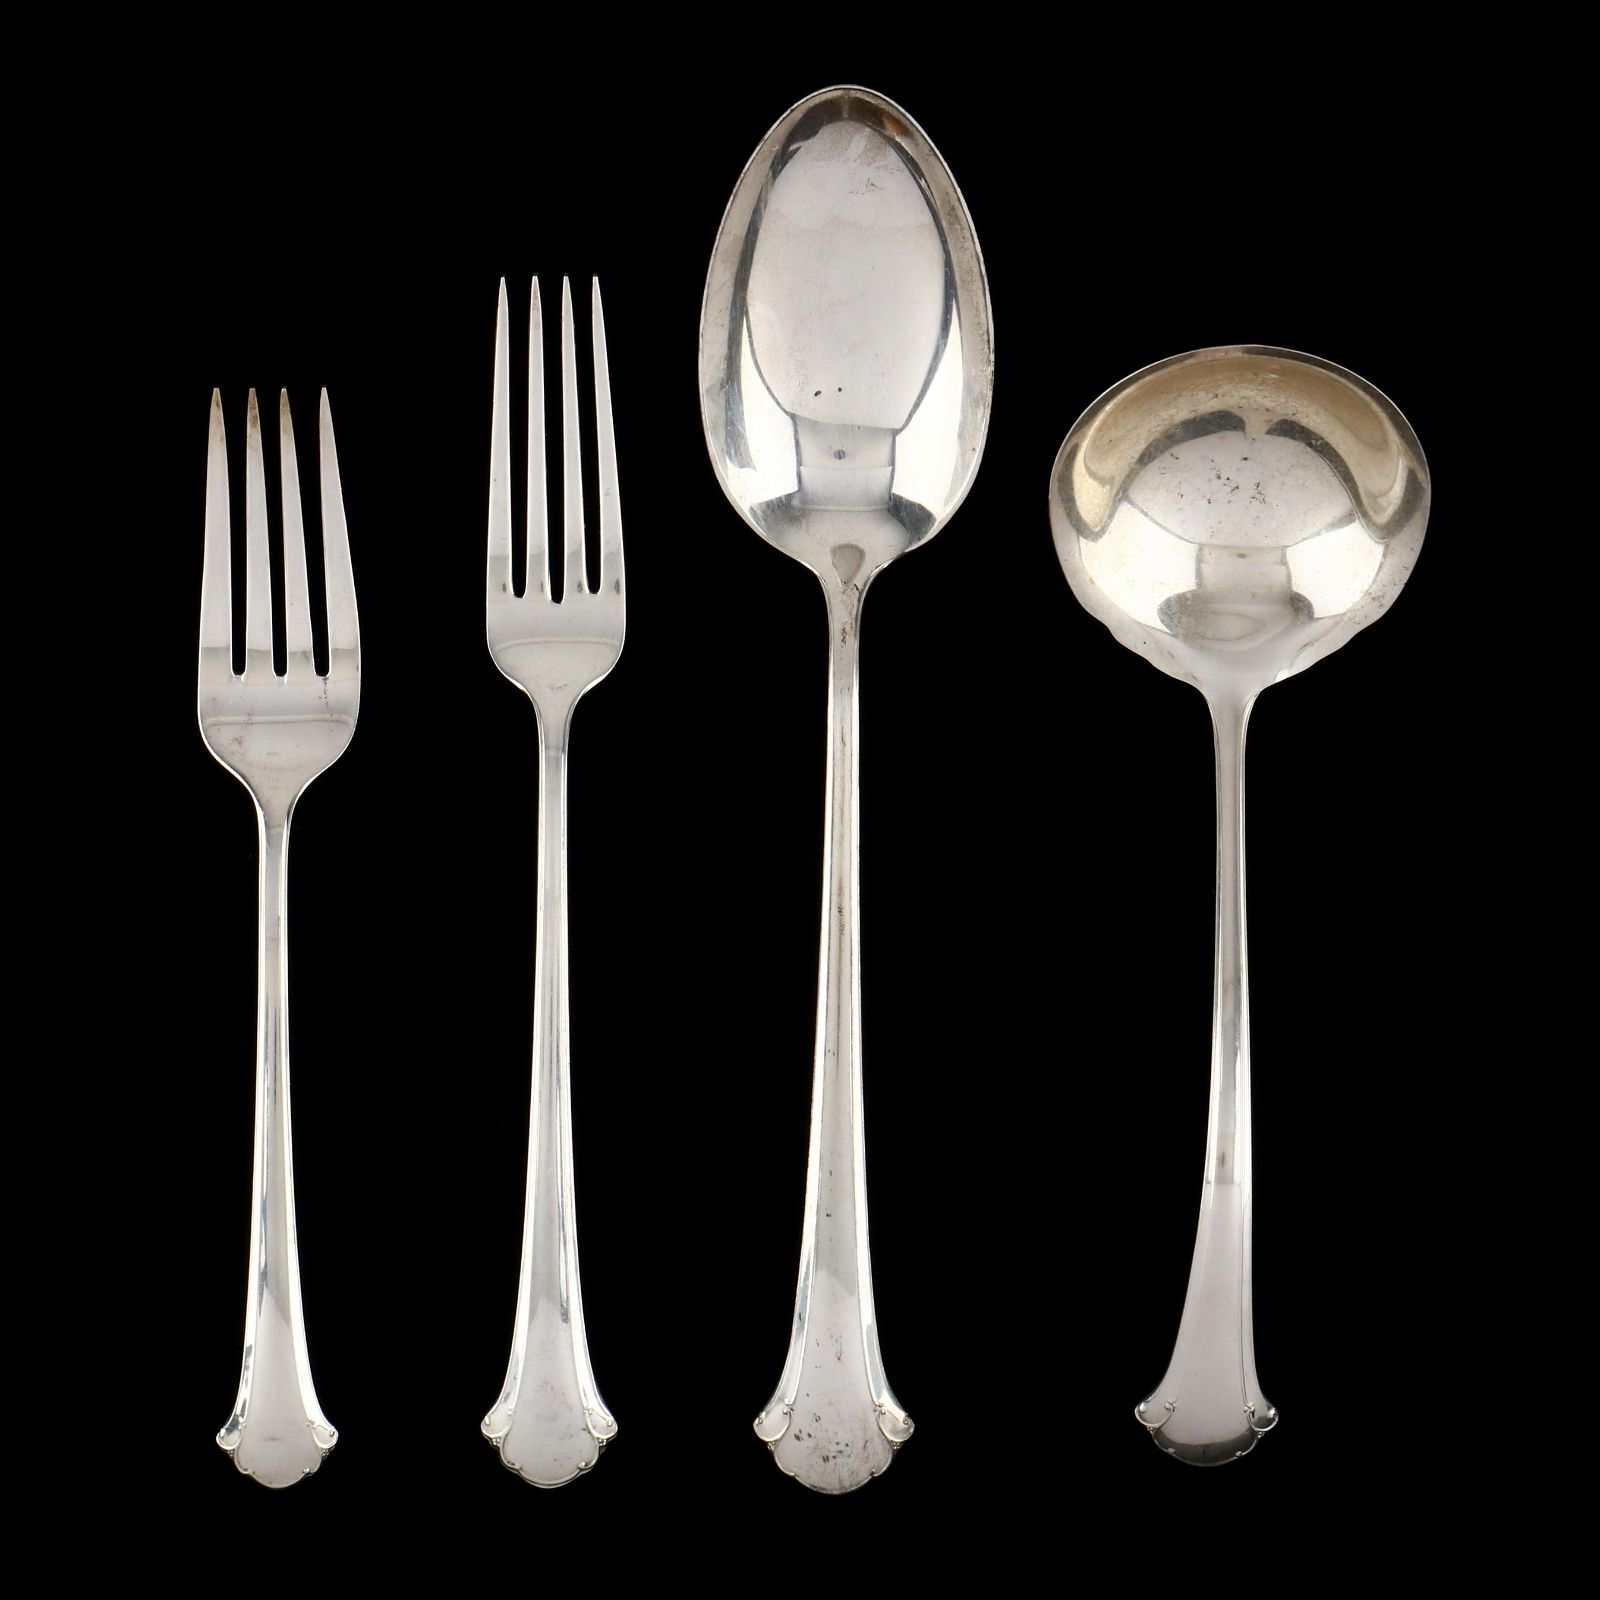 Towle Chippendale Sterling Silver Flatware